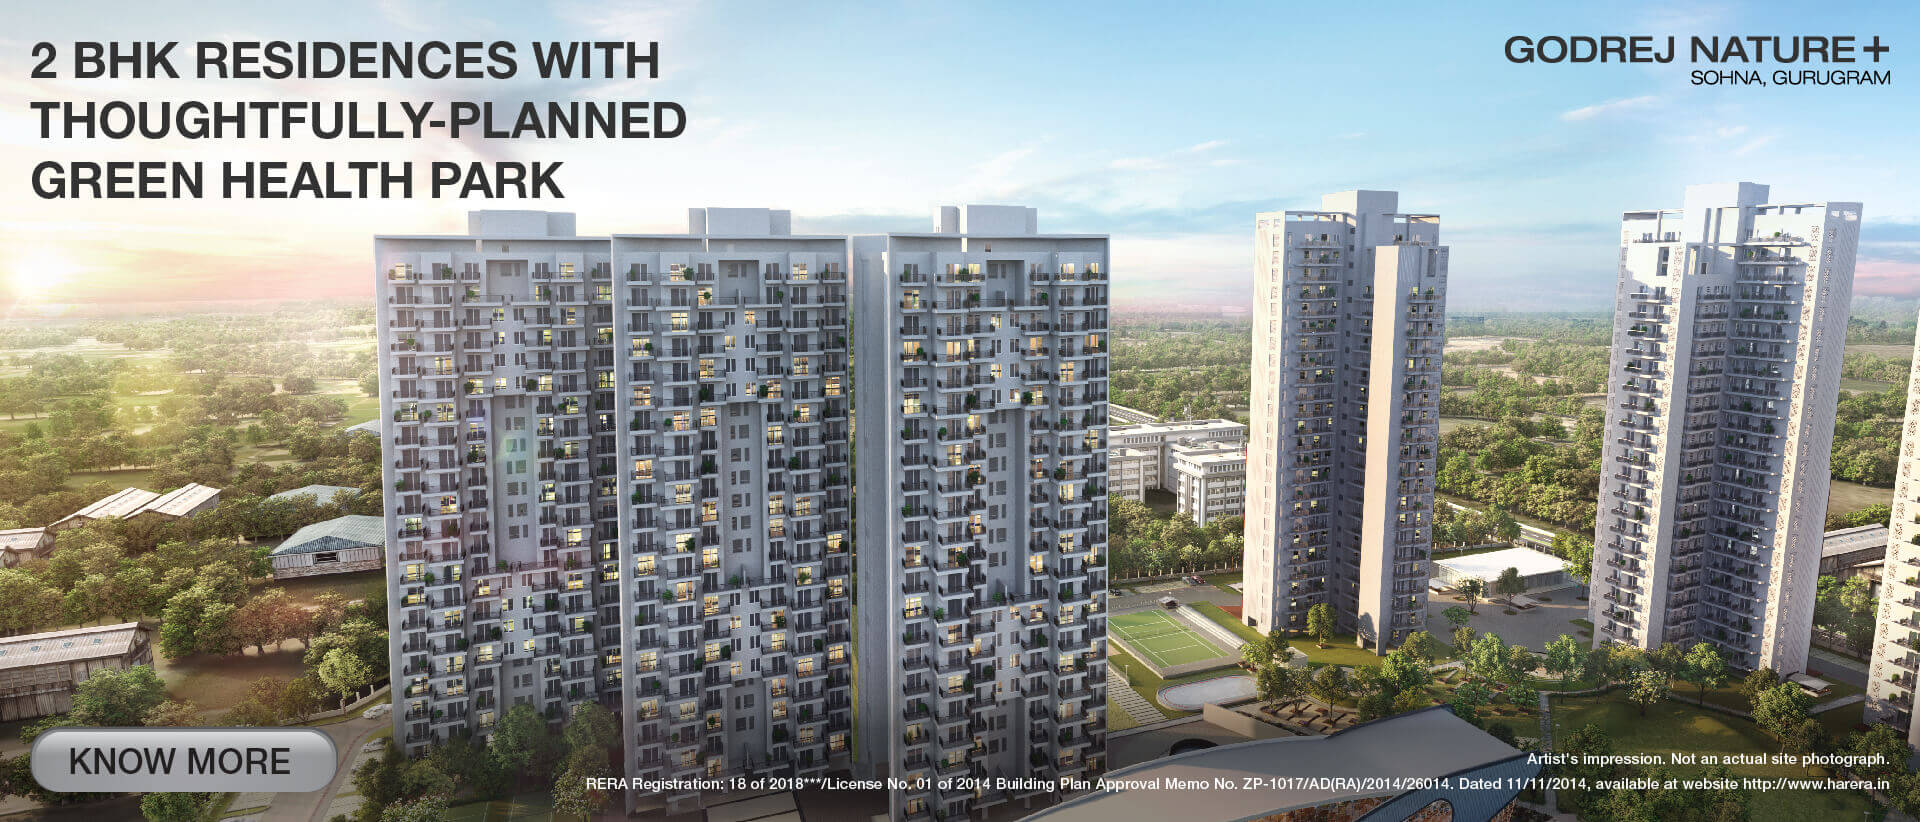 Godrej Nature Plus, Gurgaon